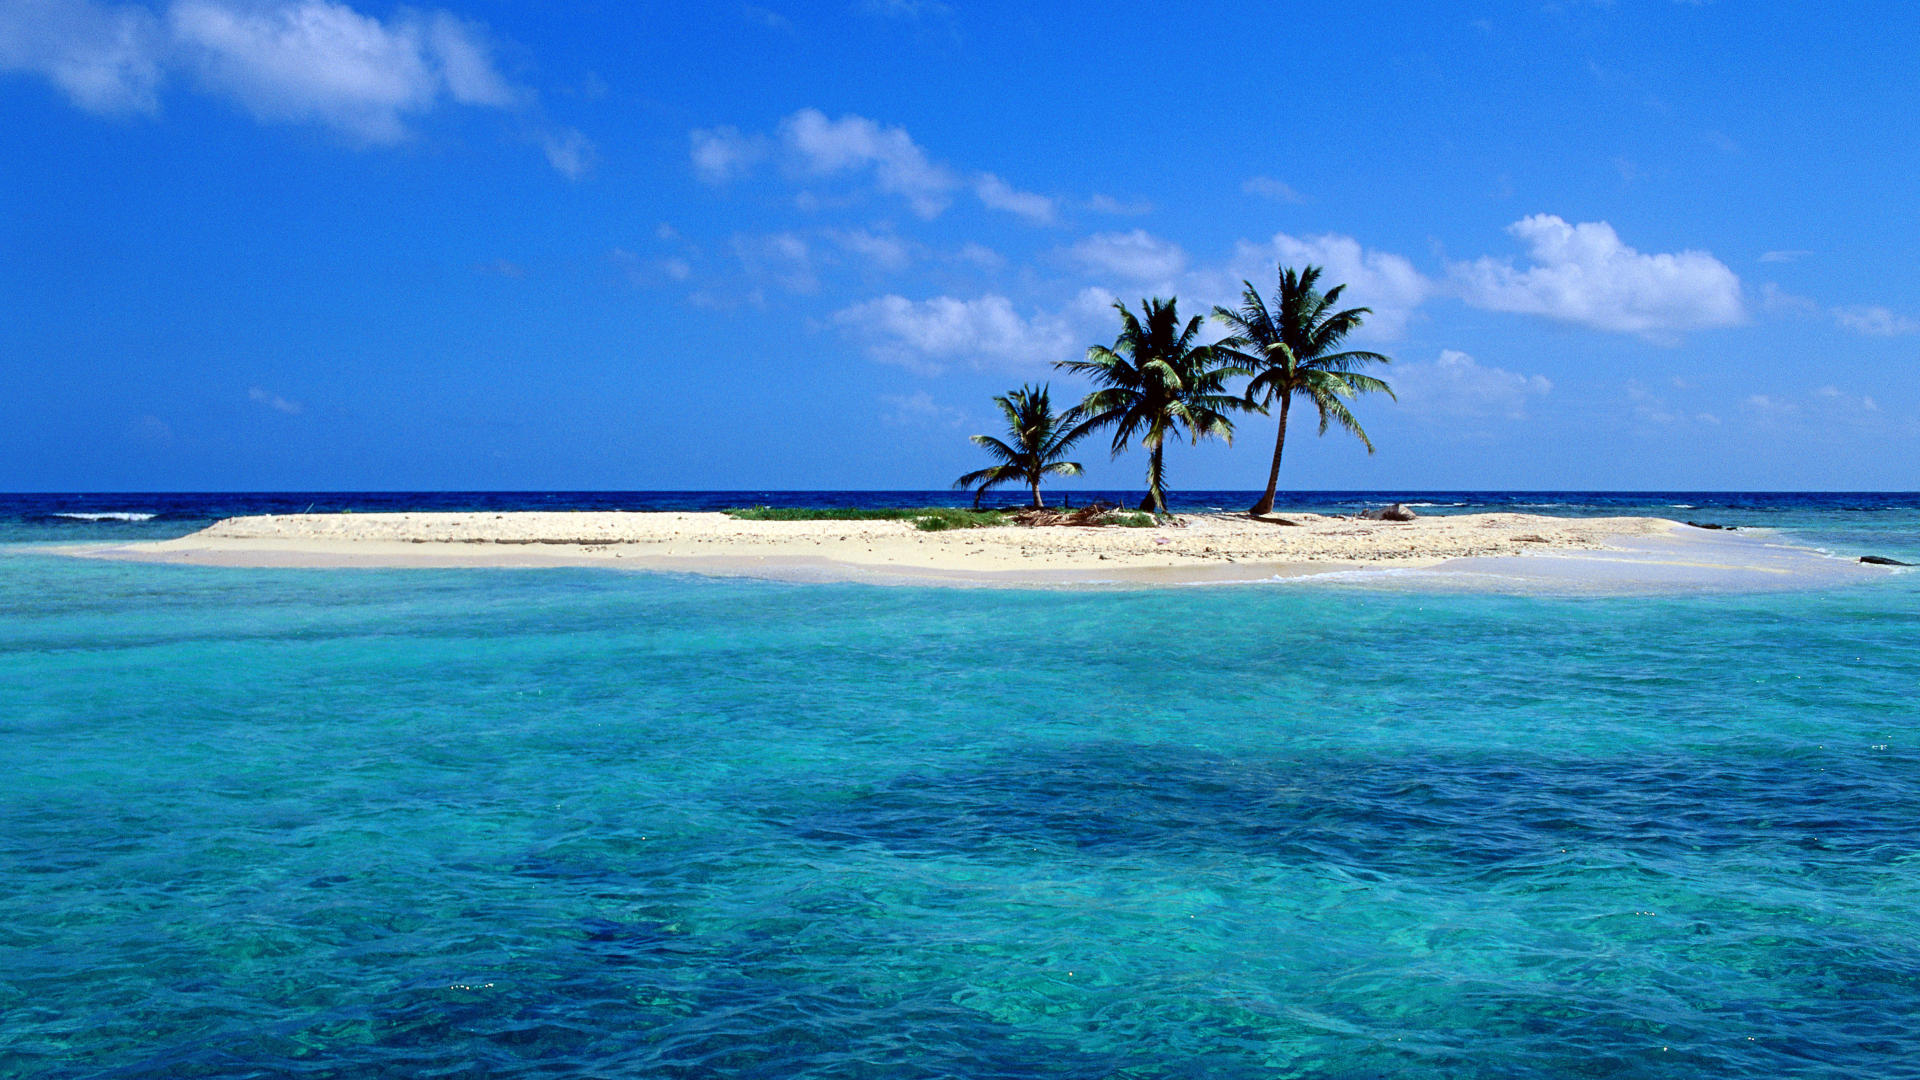 Lighthouse Reef Atoll Belize Tropical Island 1920x1080